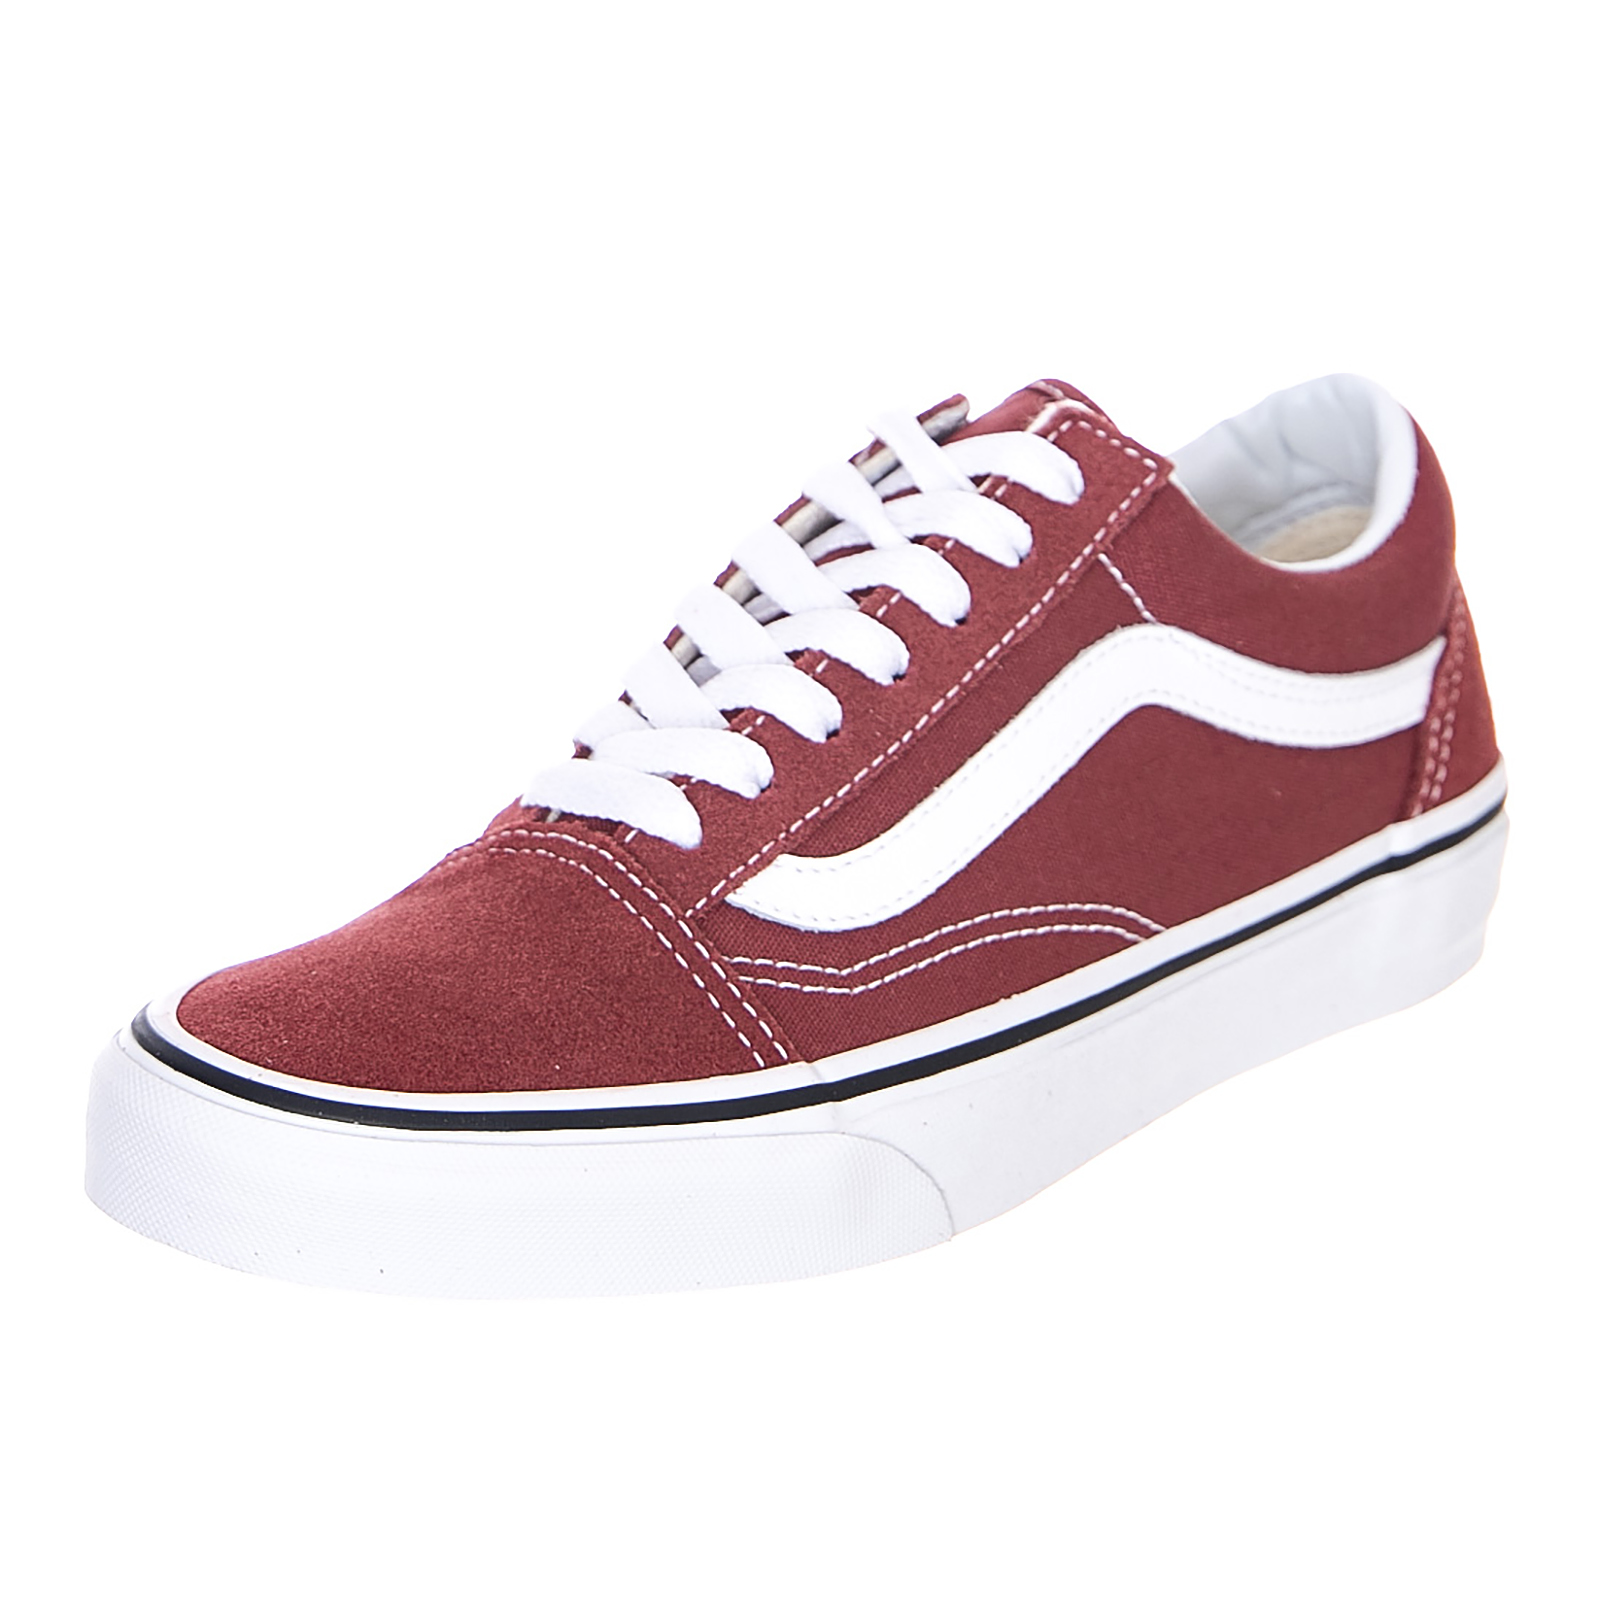 vans basse old skool bordeaux